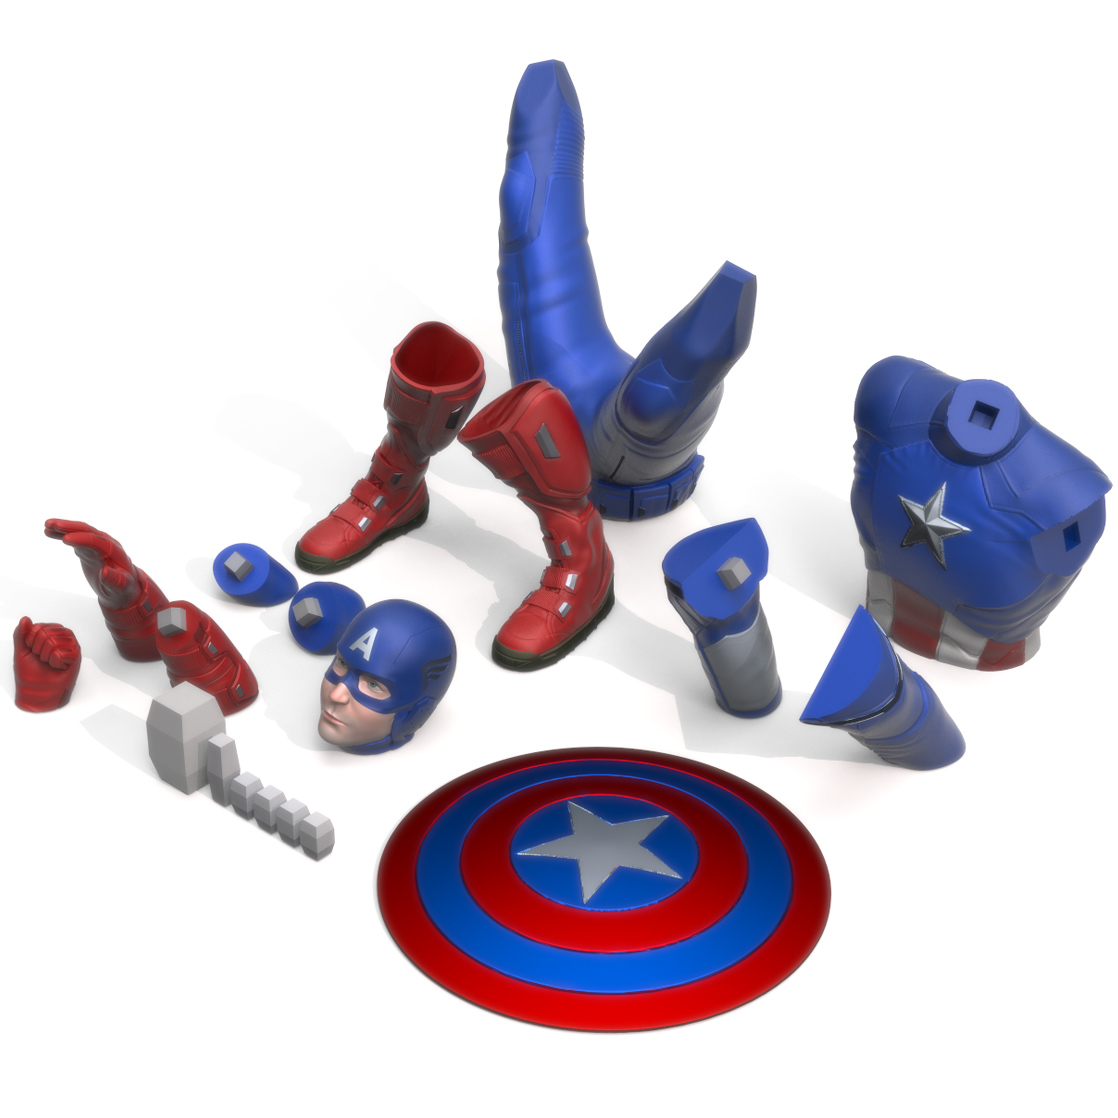 Captain America Print Bed, 3D Printer Models